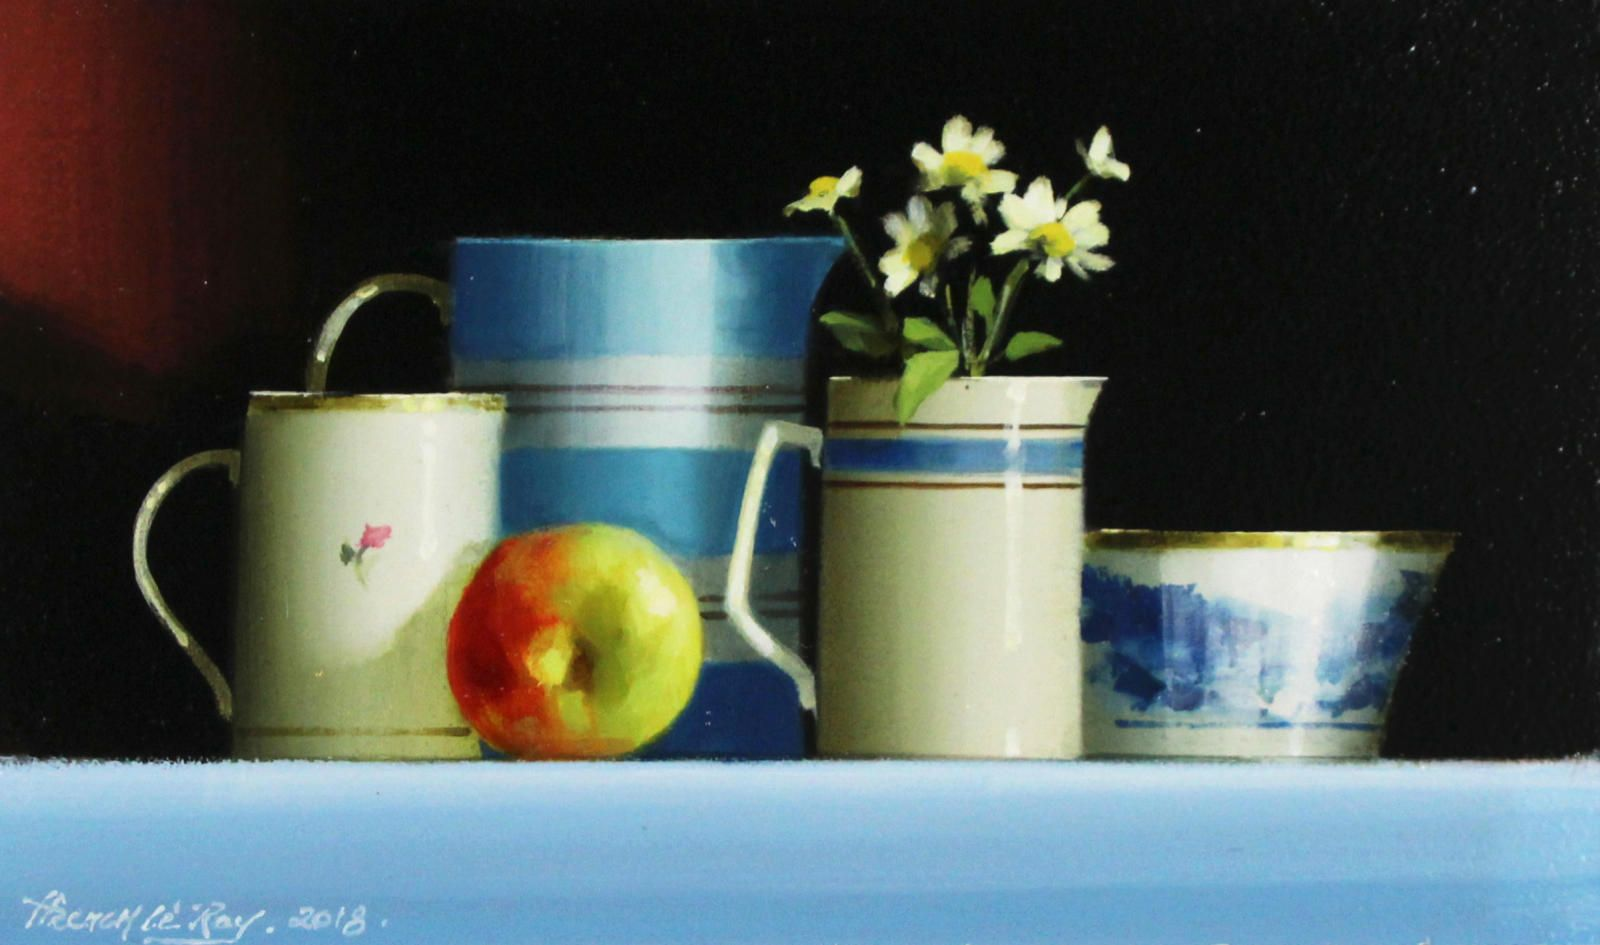 Blue Tableware and Apple